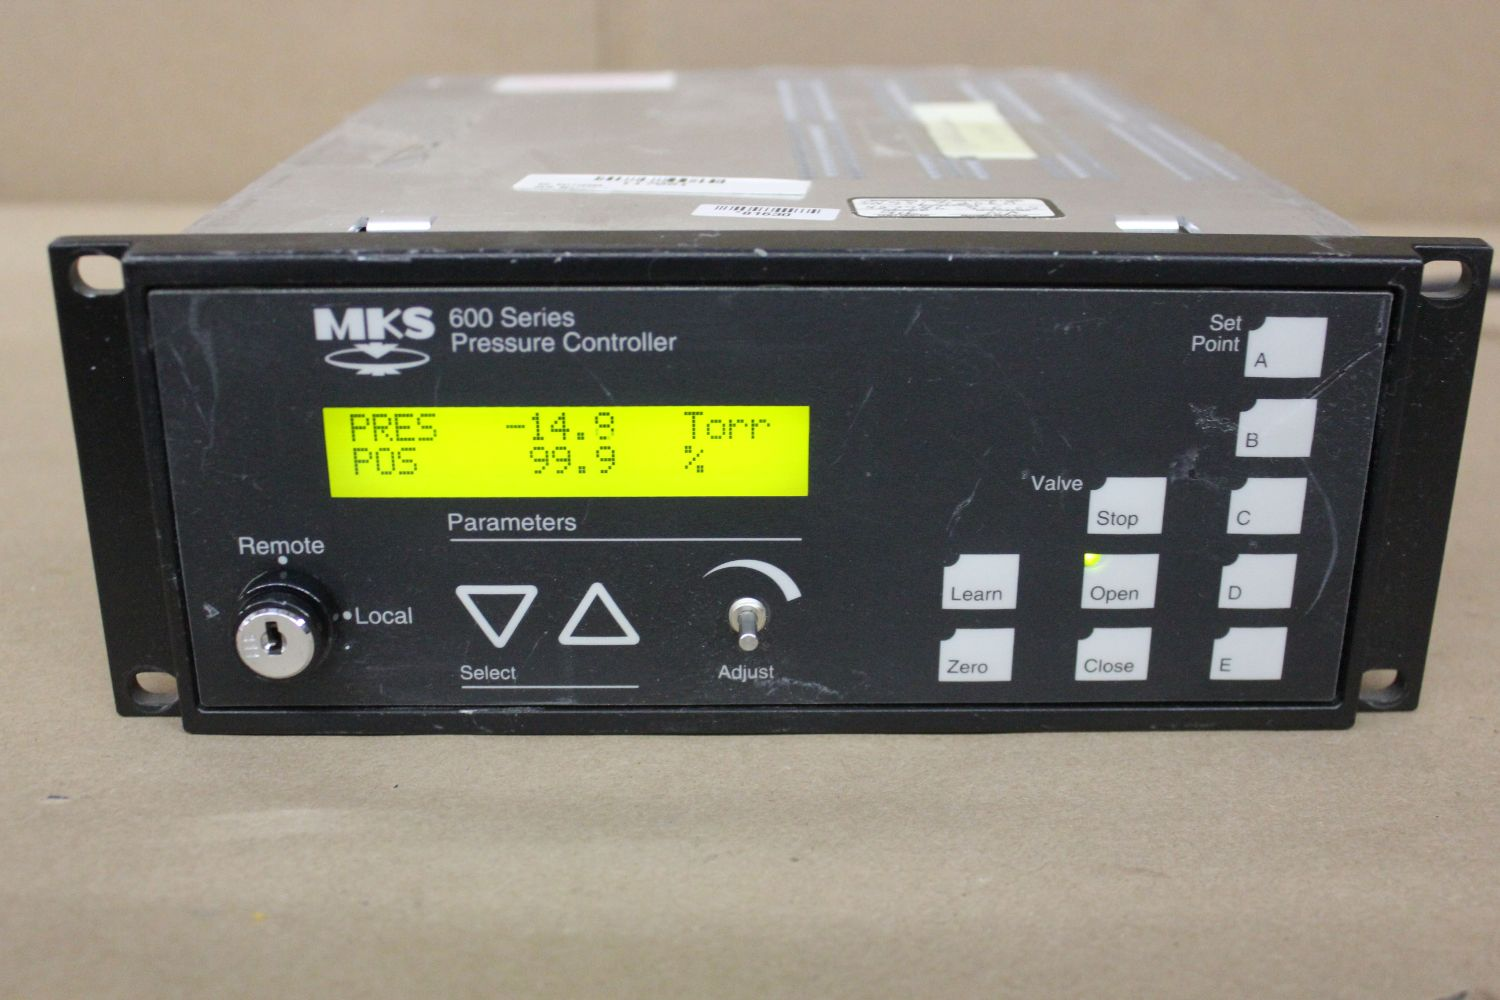 Monthly New & Used Test & Measurement, Lab, Medical, Semiconductor Equipment, Electronics + More, -Updated Daily **Shipping Available**